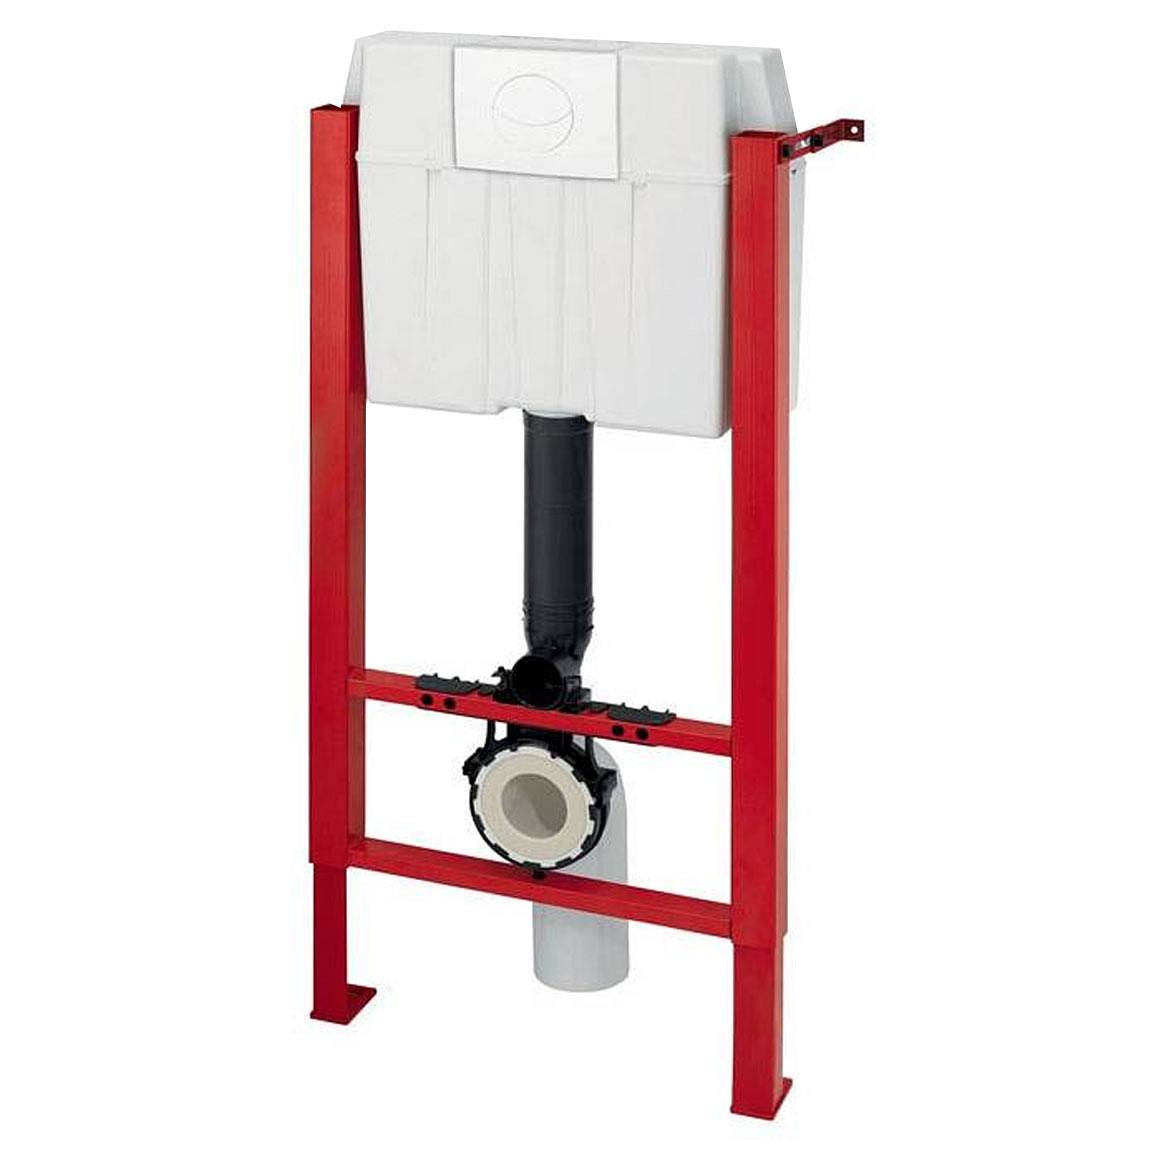 Image of Universal Wall Hung frame inc. push button cistern